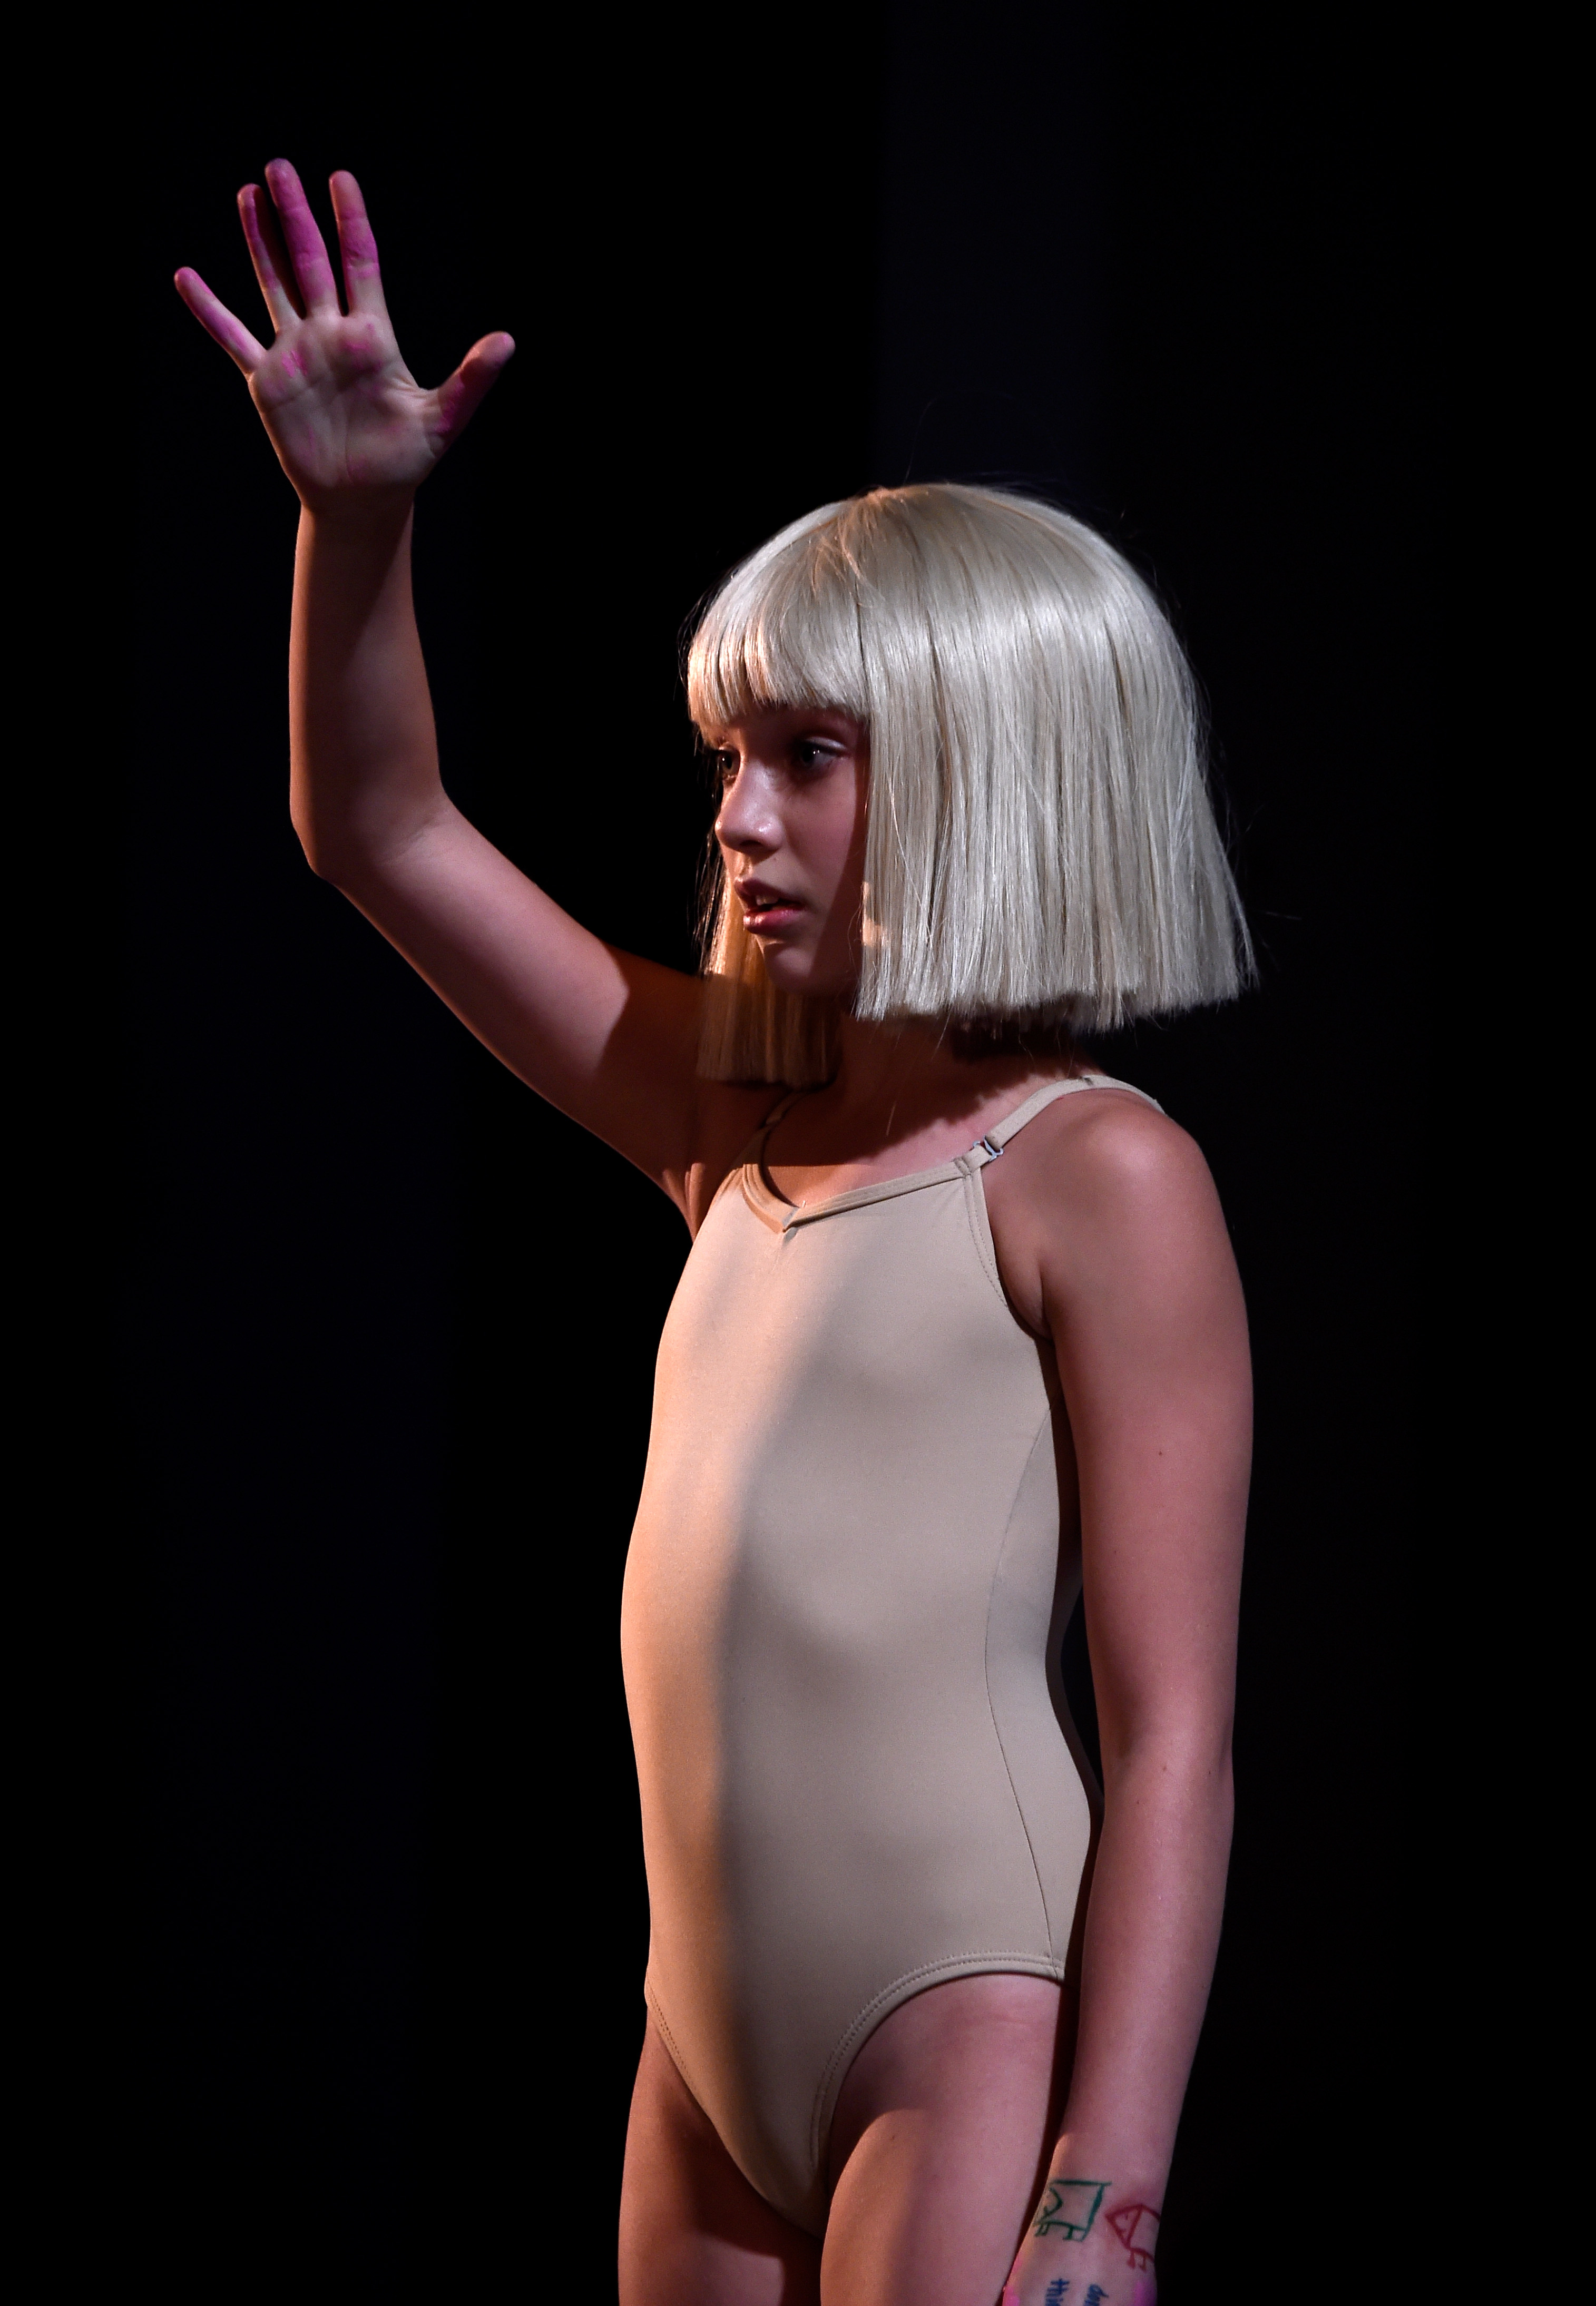 This sia chandelier halloween costume is super easy to pull off this sia chandelier halloween costume is super easy to pull off photos aloadofball Choice Image